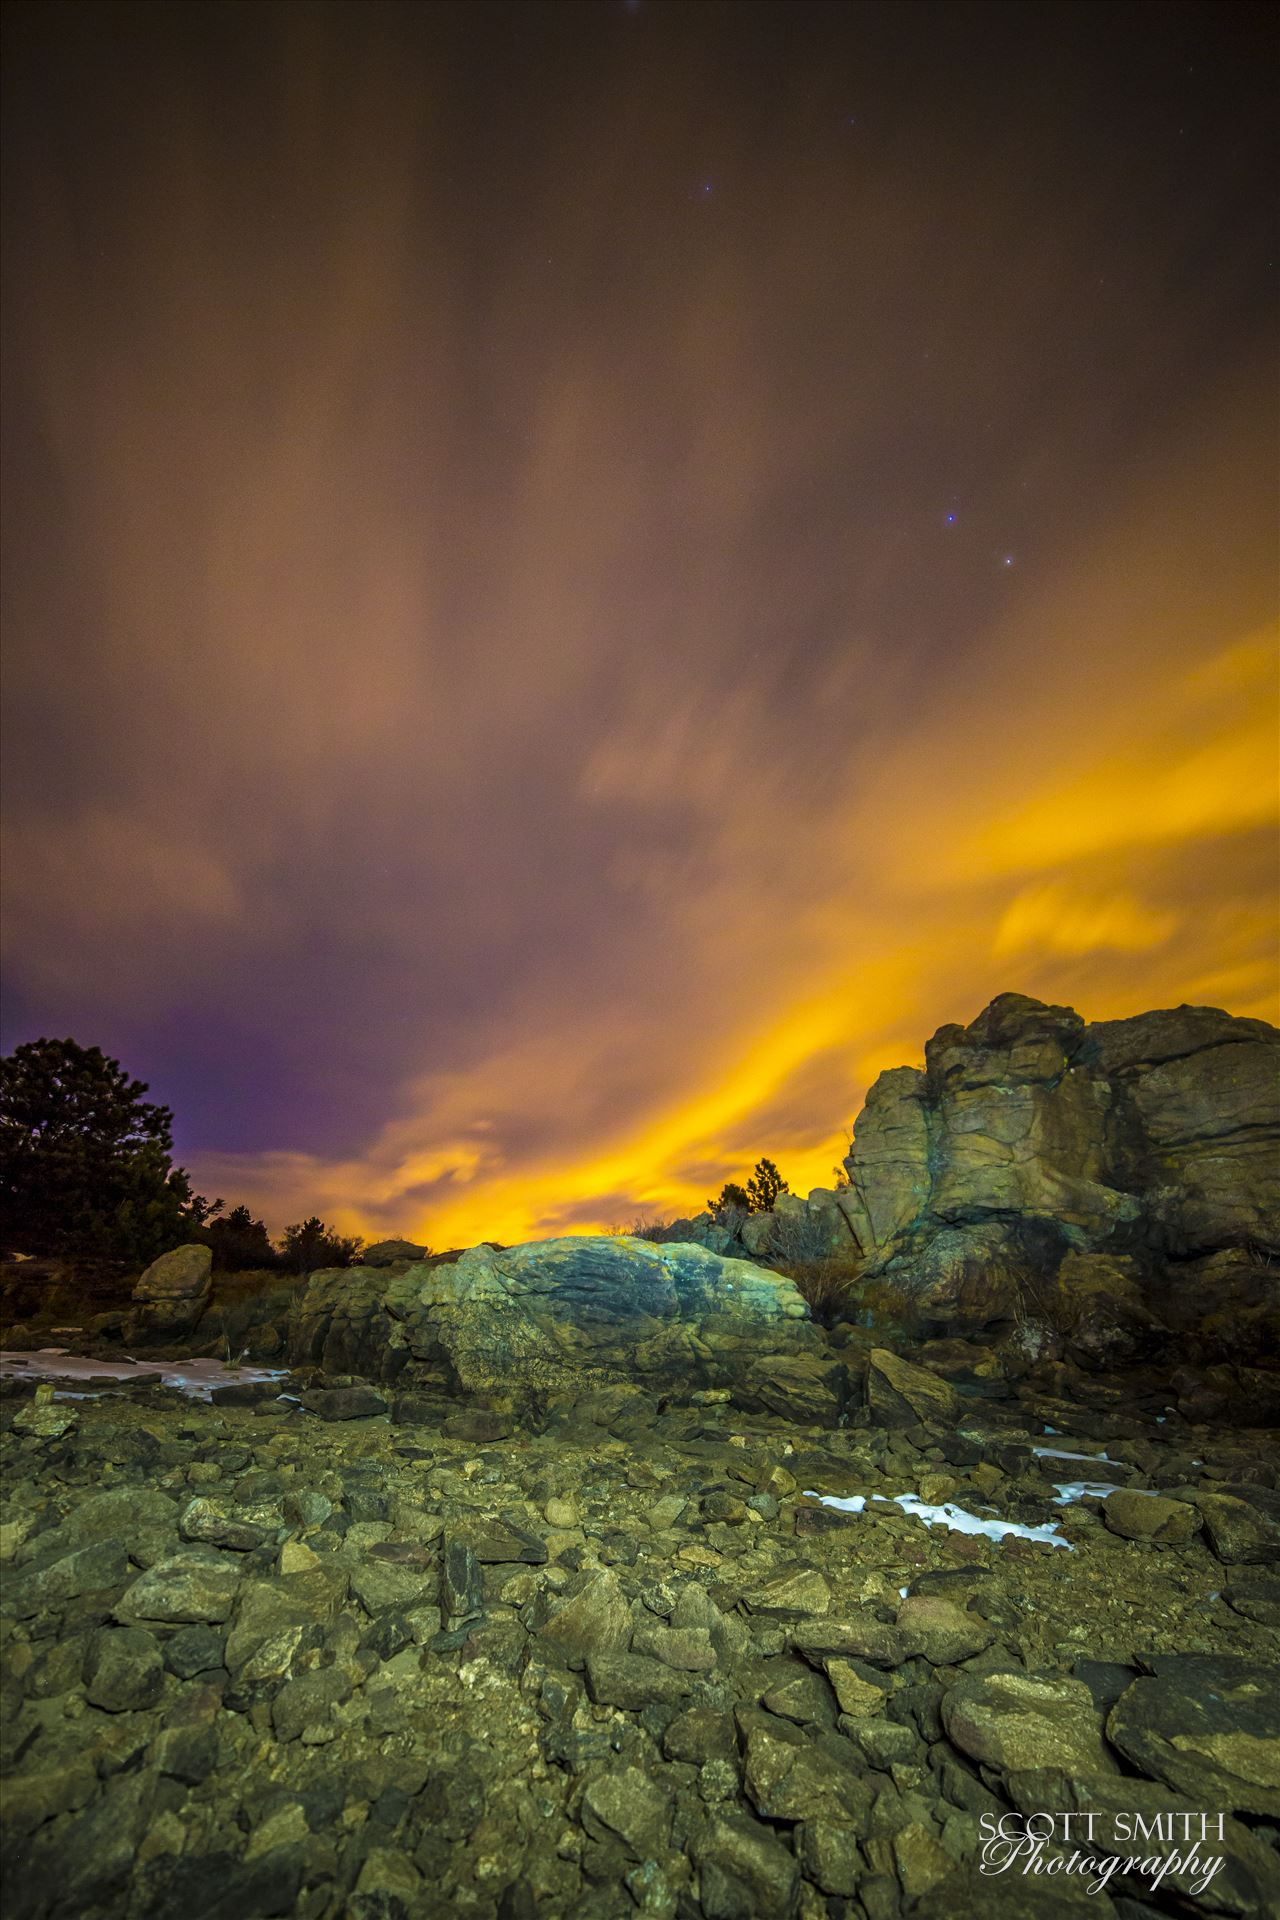 Night Sky on Fire at Mary's Lake - Clouds lit from distant Boulder and Denver light the sky at midnight.  From the shore of Mary's Lake a few miles near Estes Park, looking east towards Denver. by Scott Smith Photos